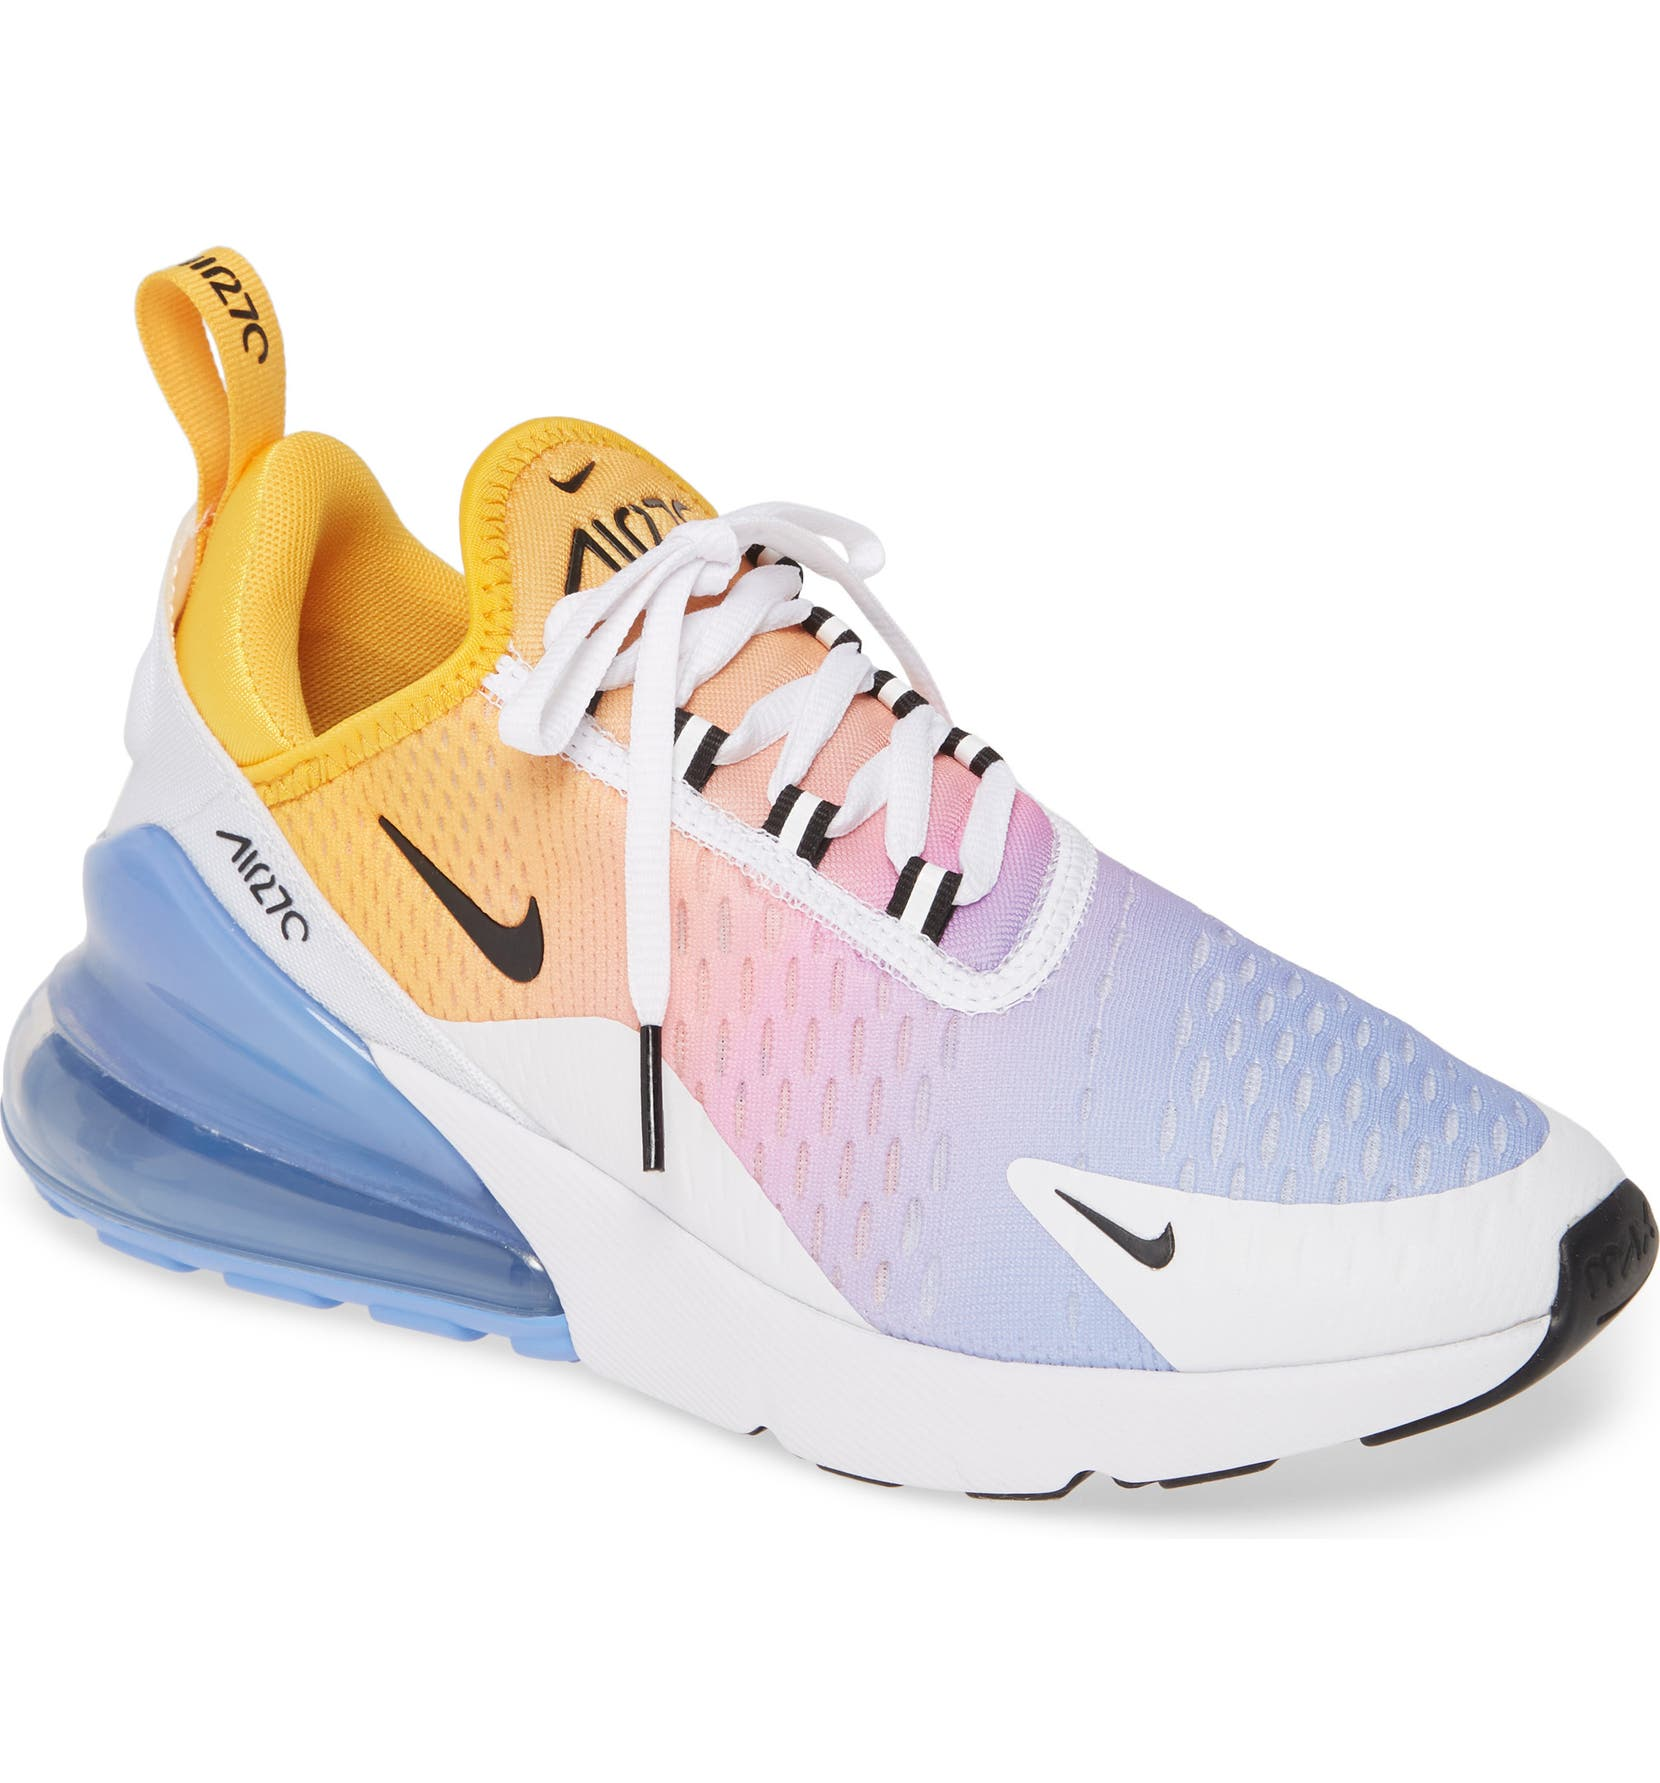 outlet store 6b4cd e665a Air Max 270 Premium Sneaker